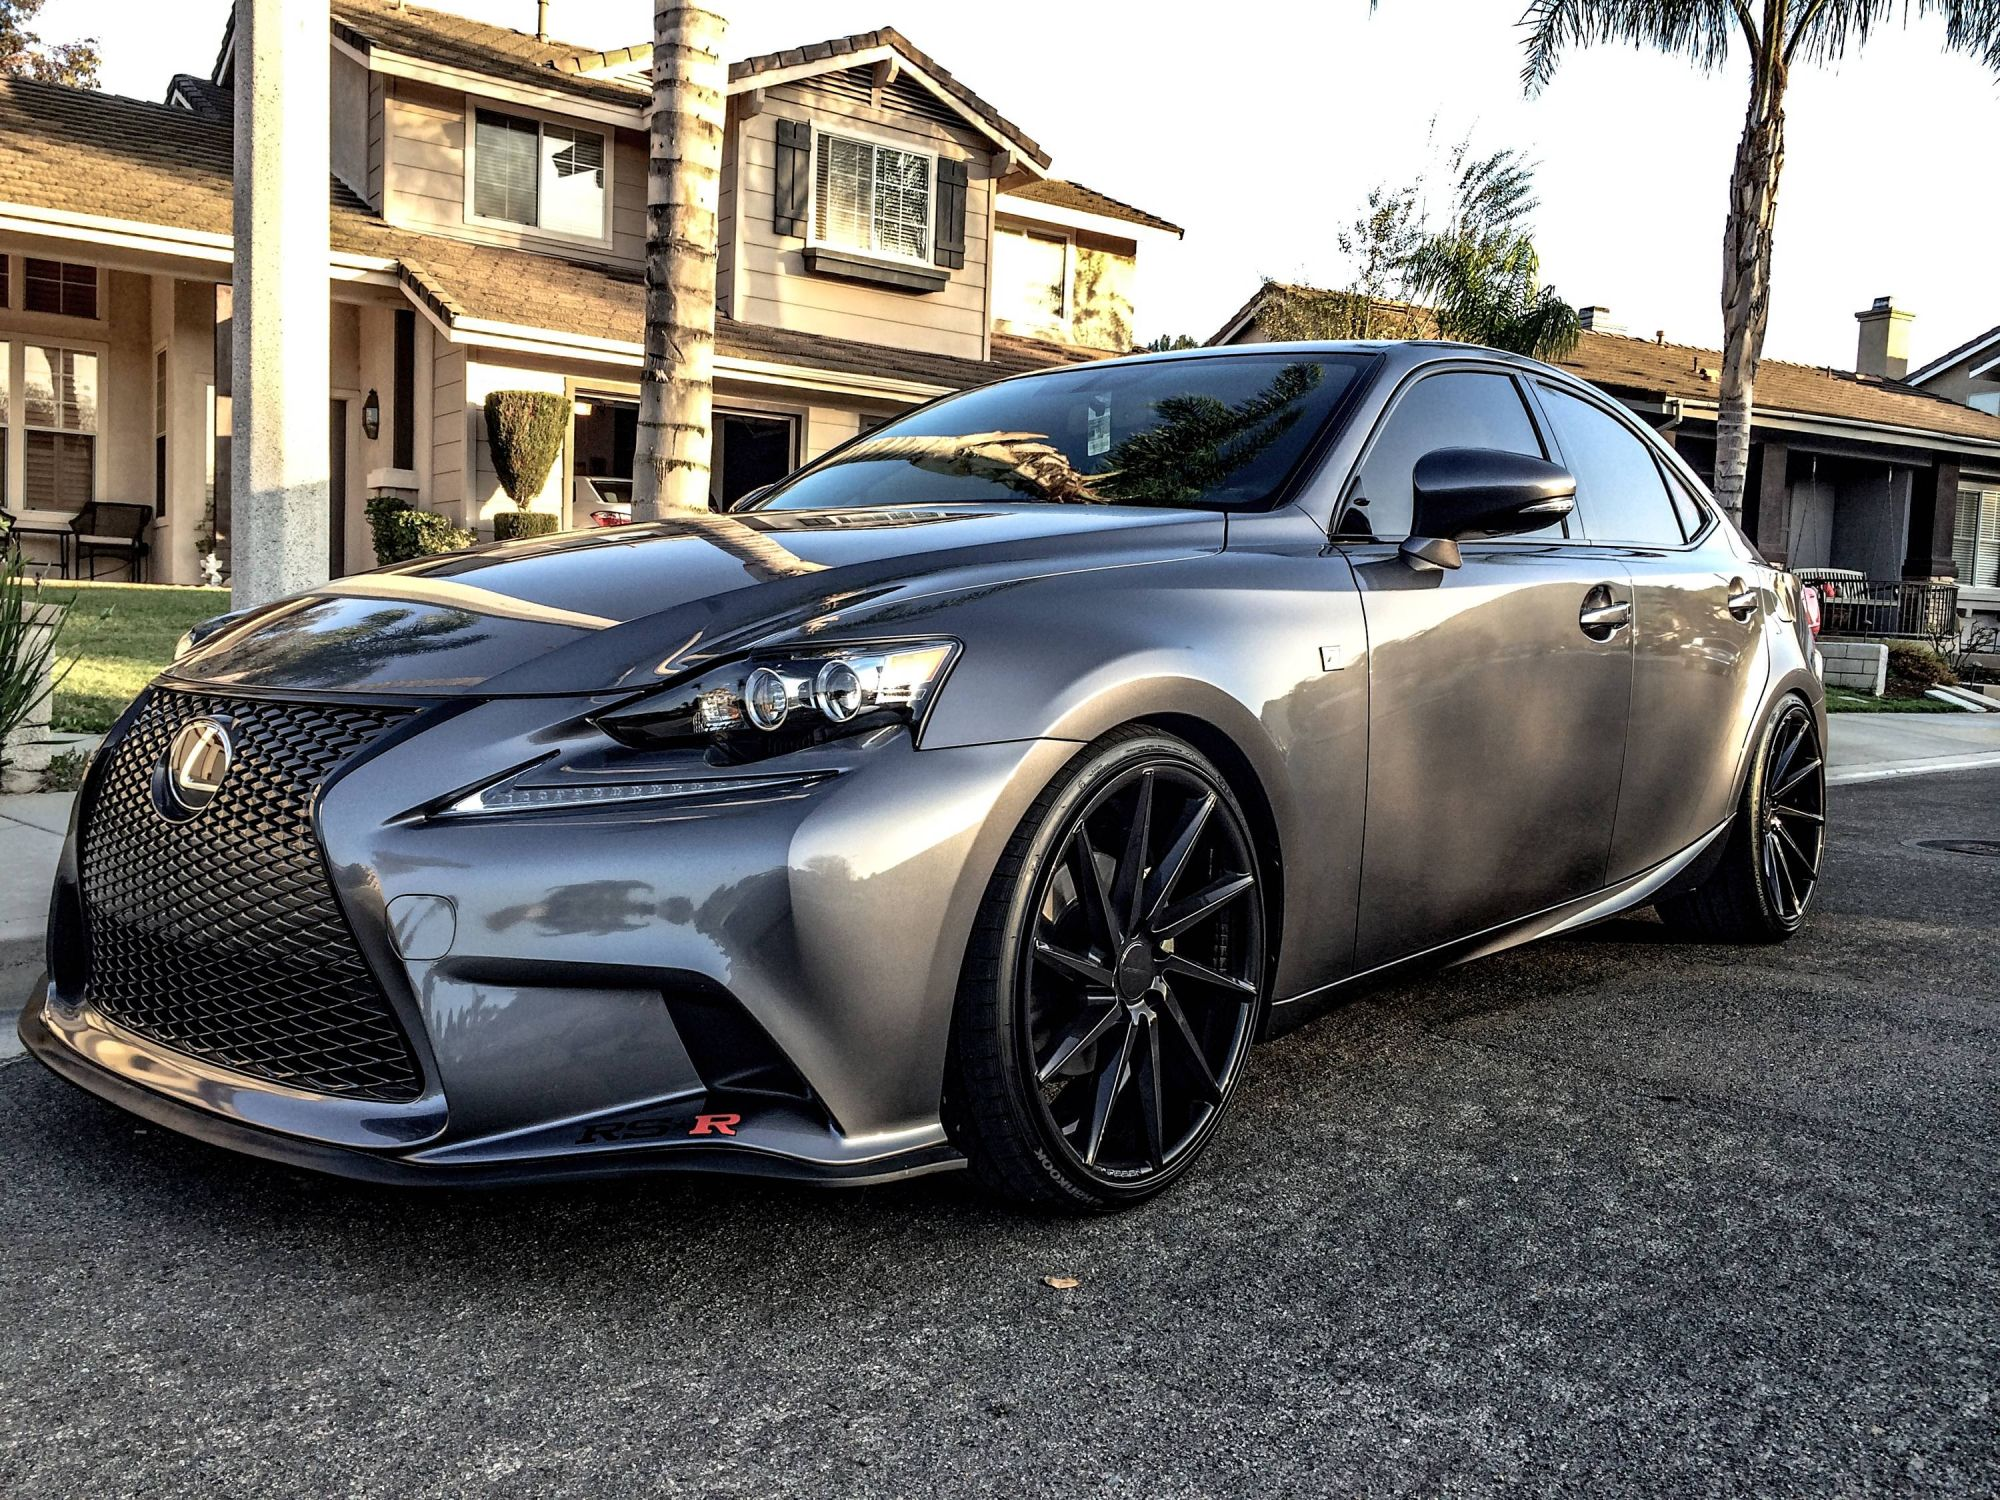 MPPSOCIETY Modified Cars 3isVader Lexus ISI350 Vossen wheels 01